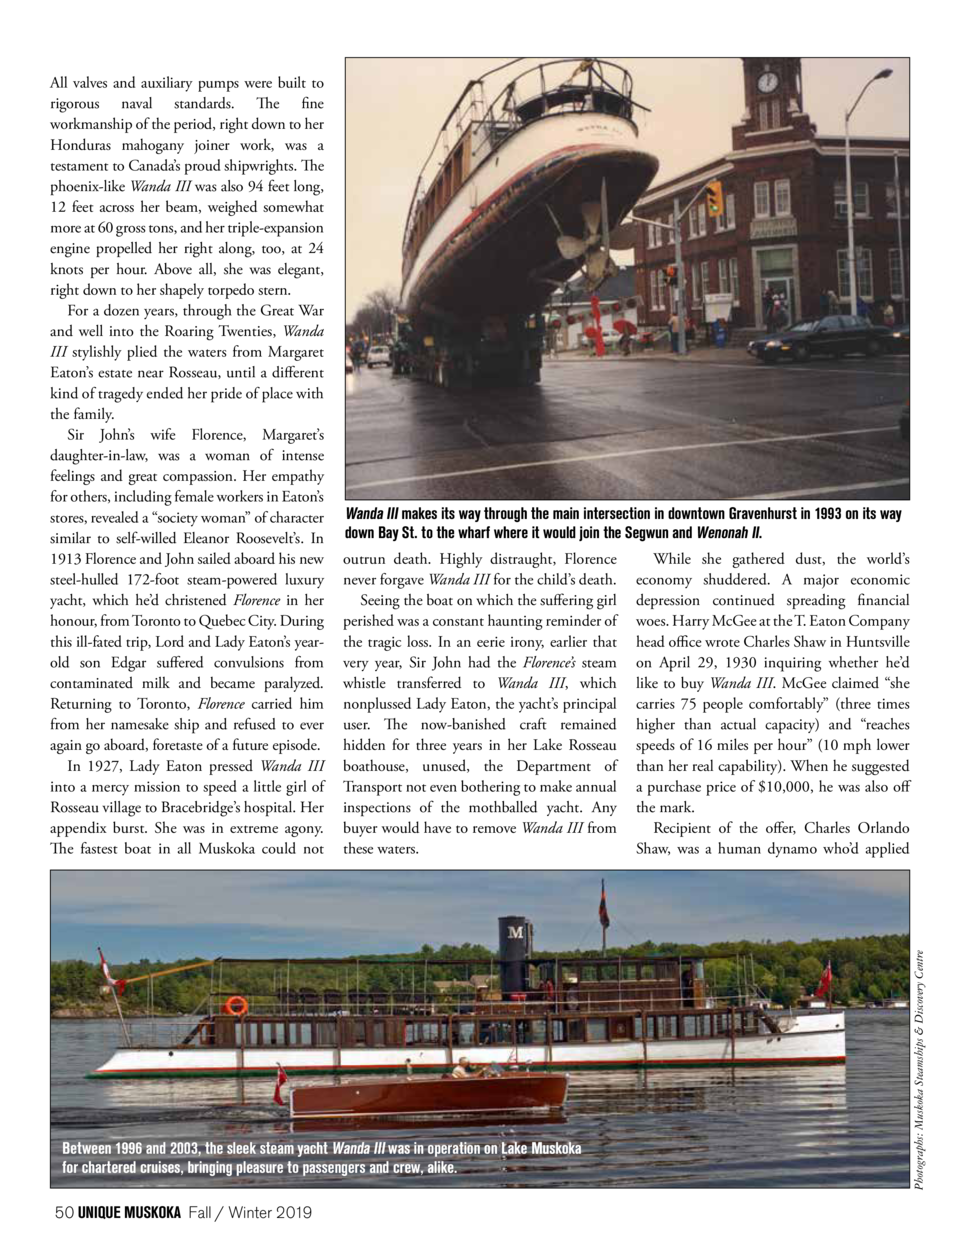 Wanda III makes its way through the main intersection in downtown Gravenhurst in 1993 on its way down Bay St. to the wharf...